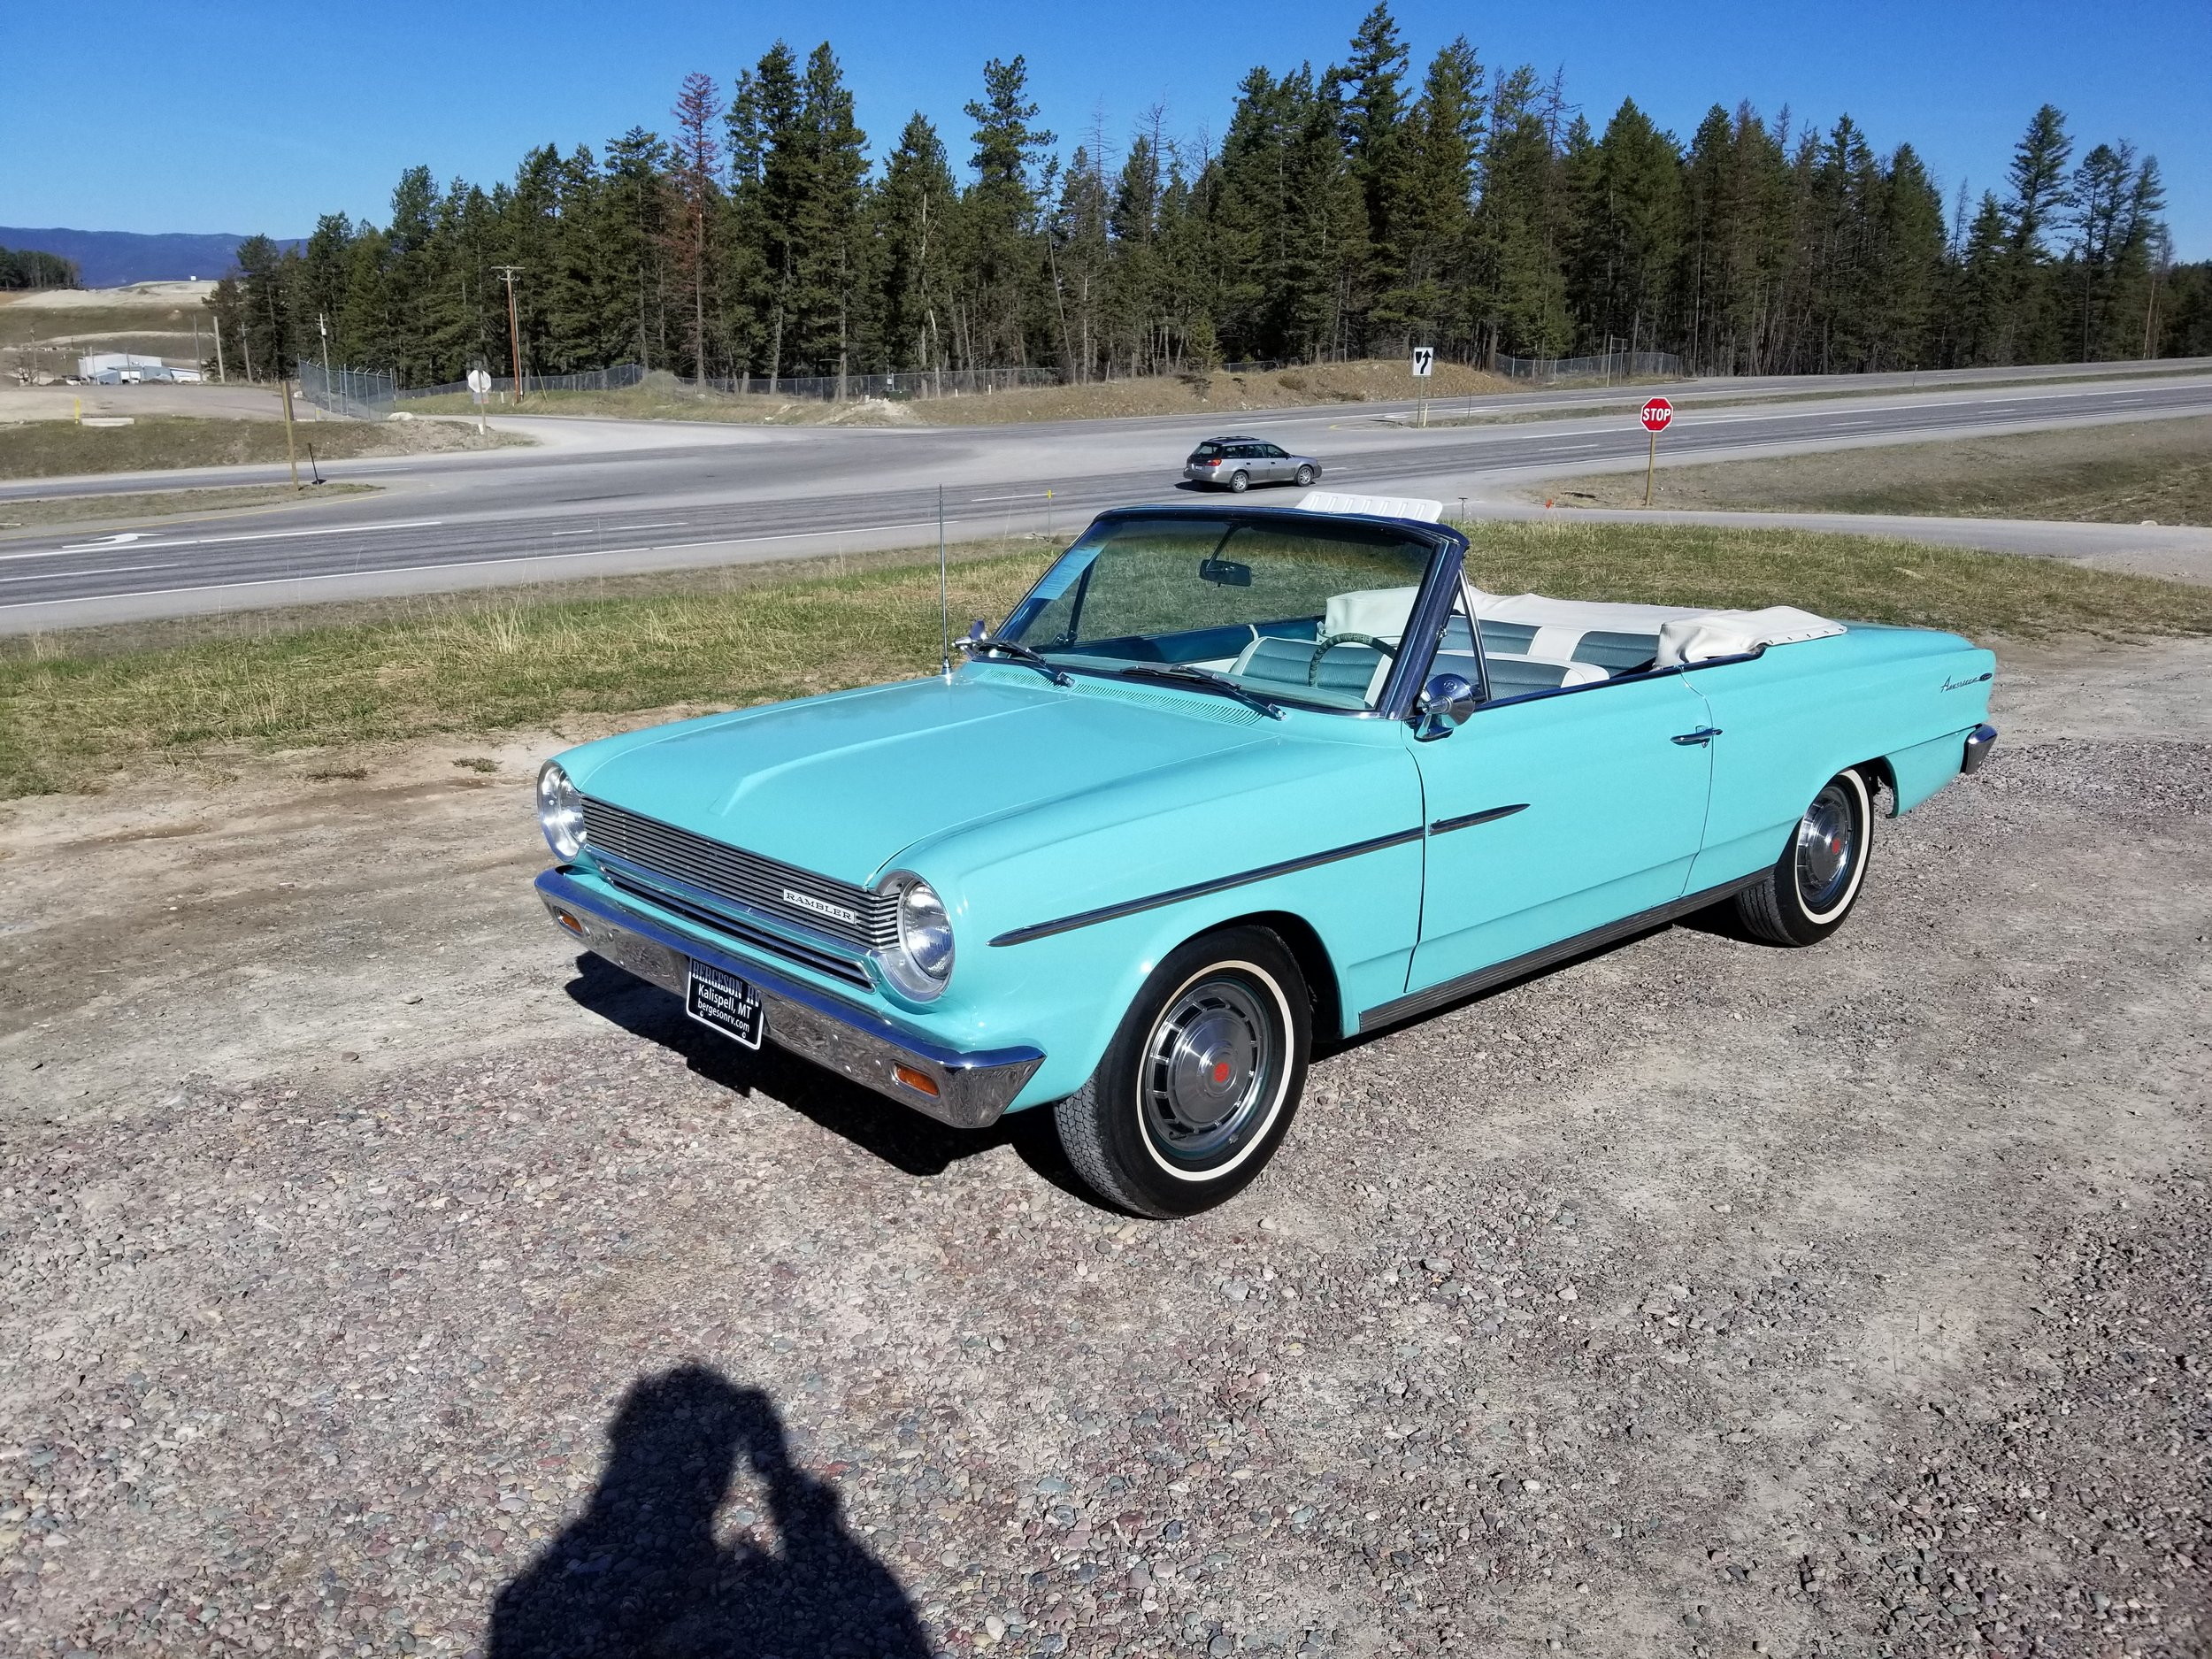 1964 AMC Rambler - Rambler 440 Convertible, Three on the tree and a straight six, drives amazing.SOLD